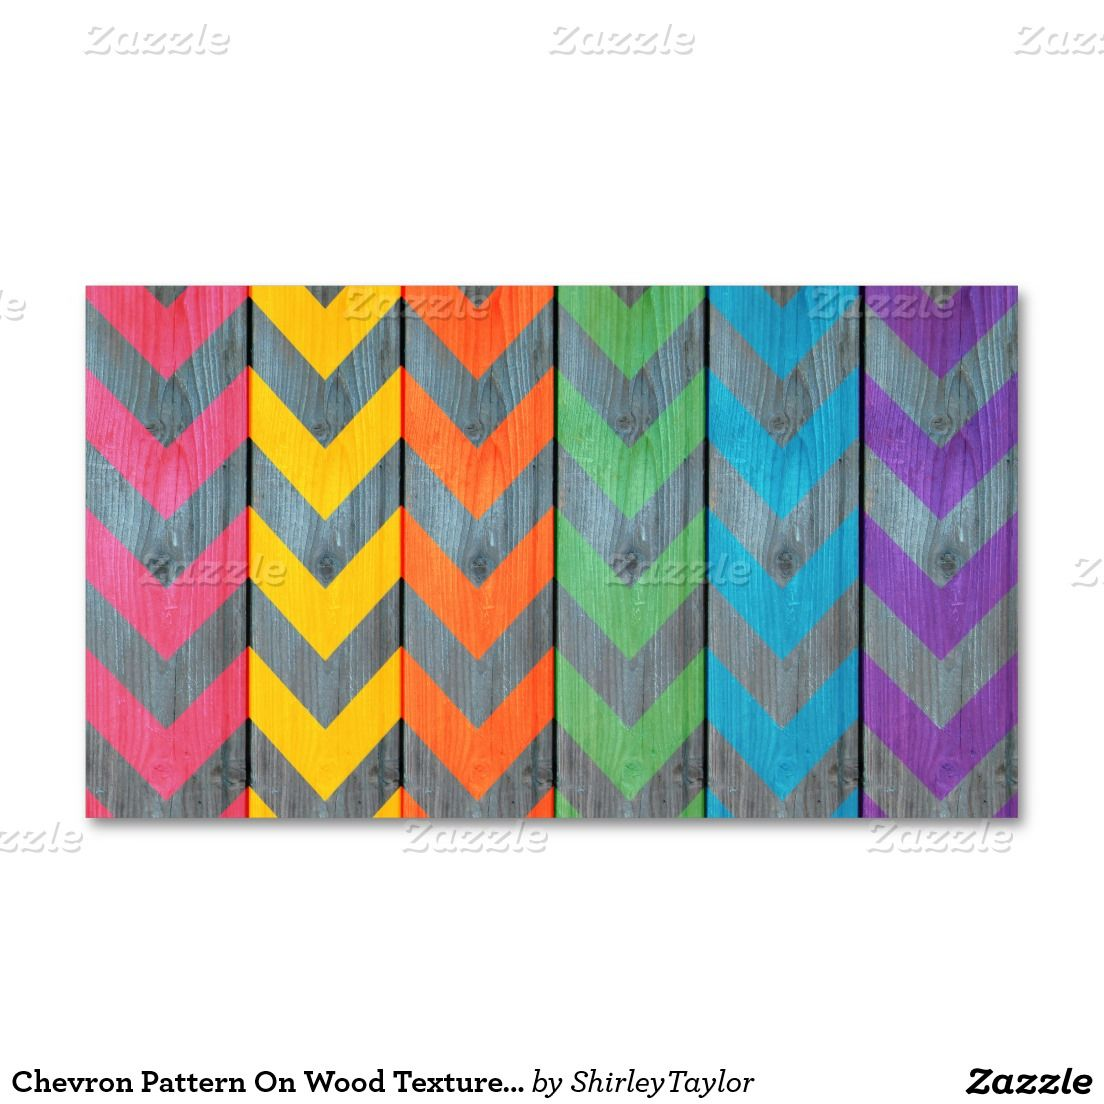 Chevron pattern on wood texture business cards zazzle sold from chevron pattern on wood texture business cards zazzle reheart Image collections